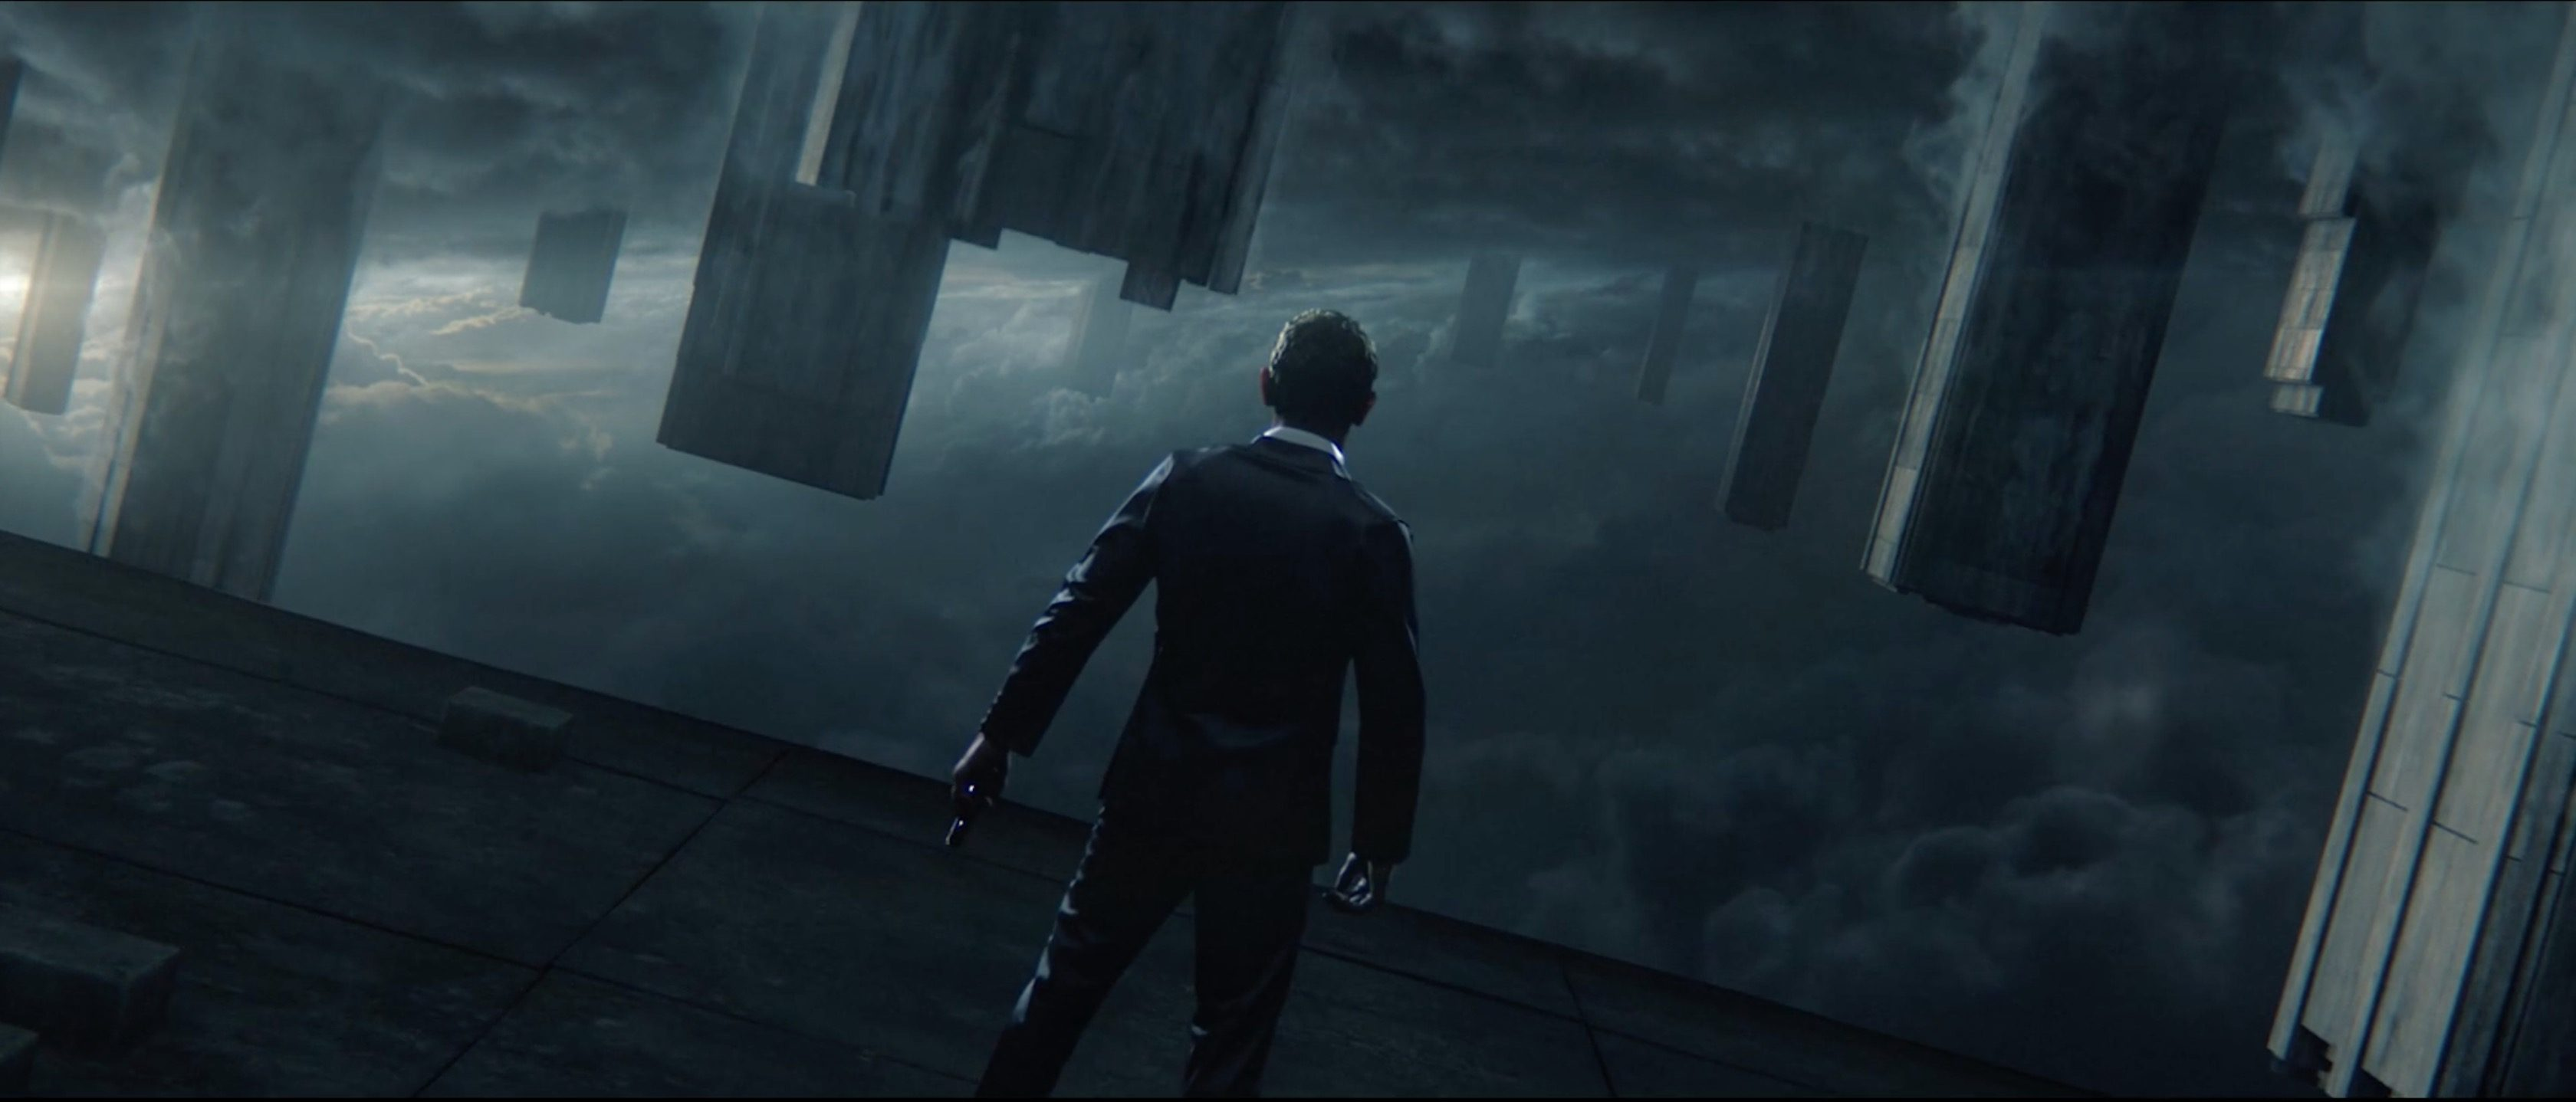 Homage to Skyfall title sequence